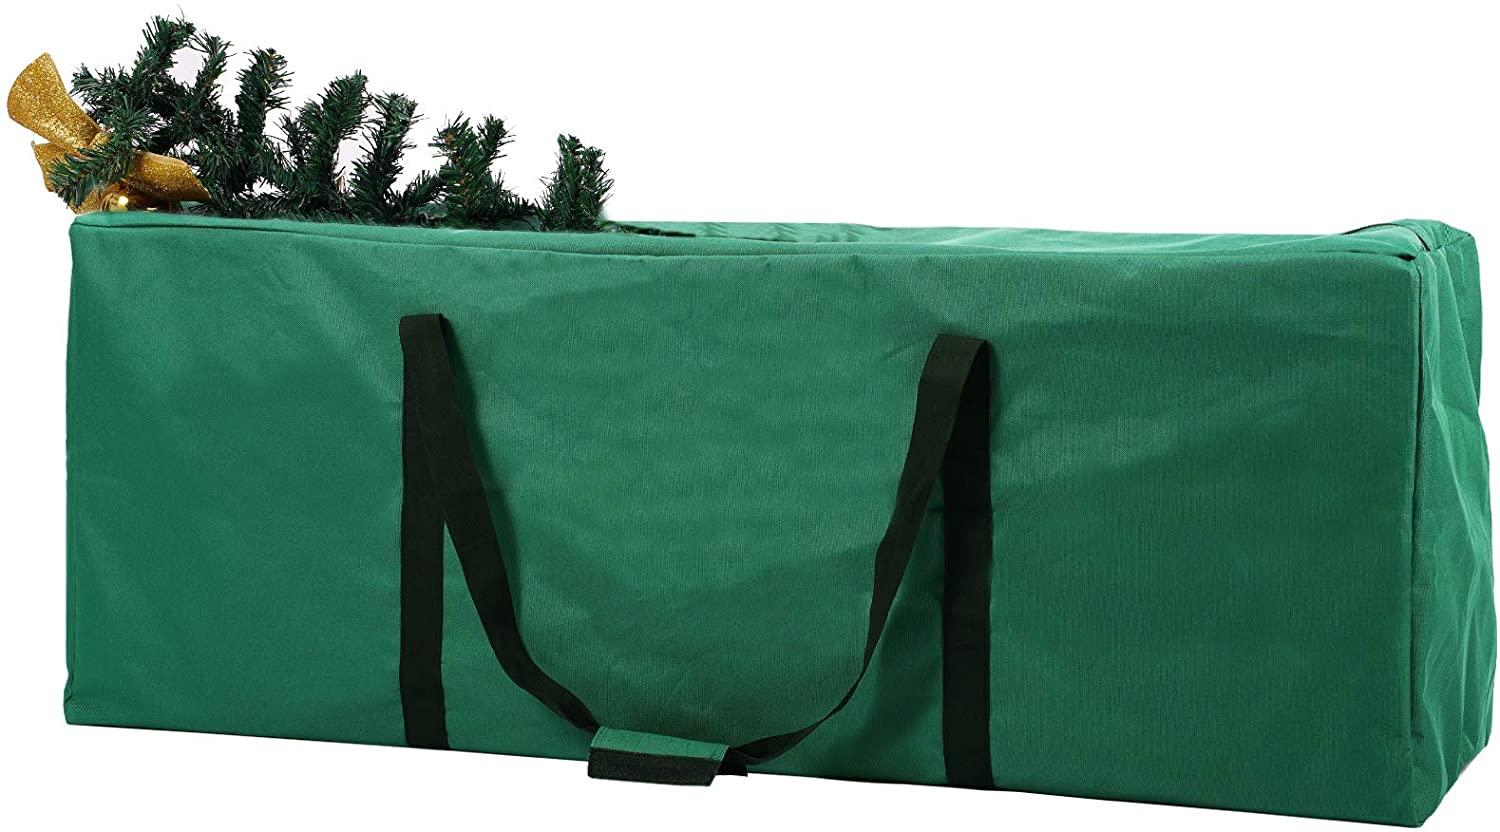 INFANZIA Christmas Tree Storage Bag,Fits Up to 7.5ft Tall Xmas Artificial Disassembled Trees Bag with Durable Handles&Heavy Duty Zipper ,Water-Resistant Material Protects from Dust, Moisture